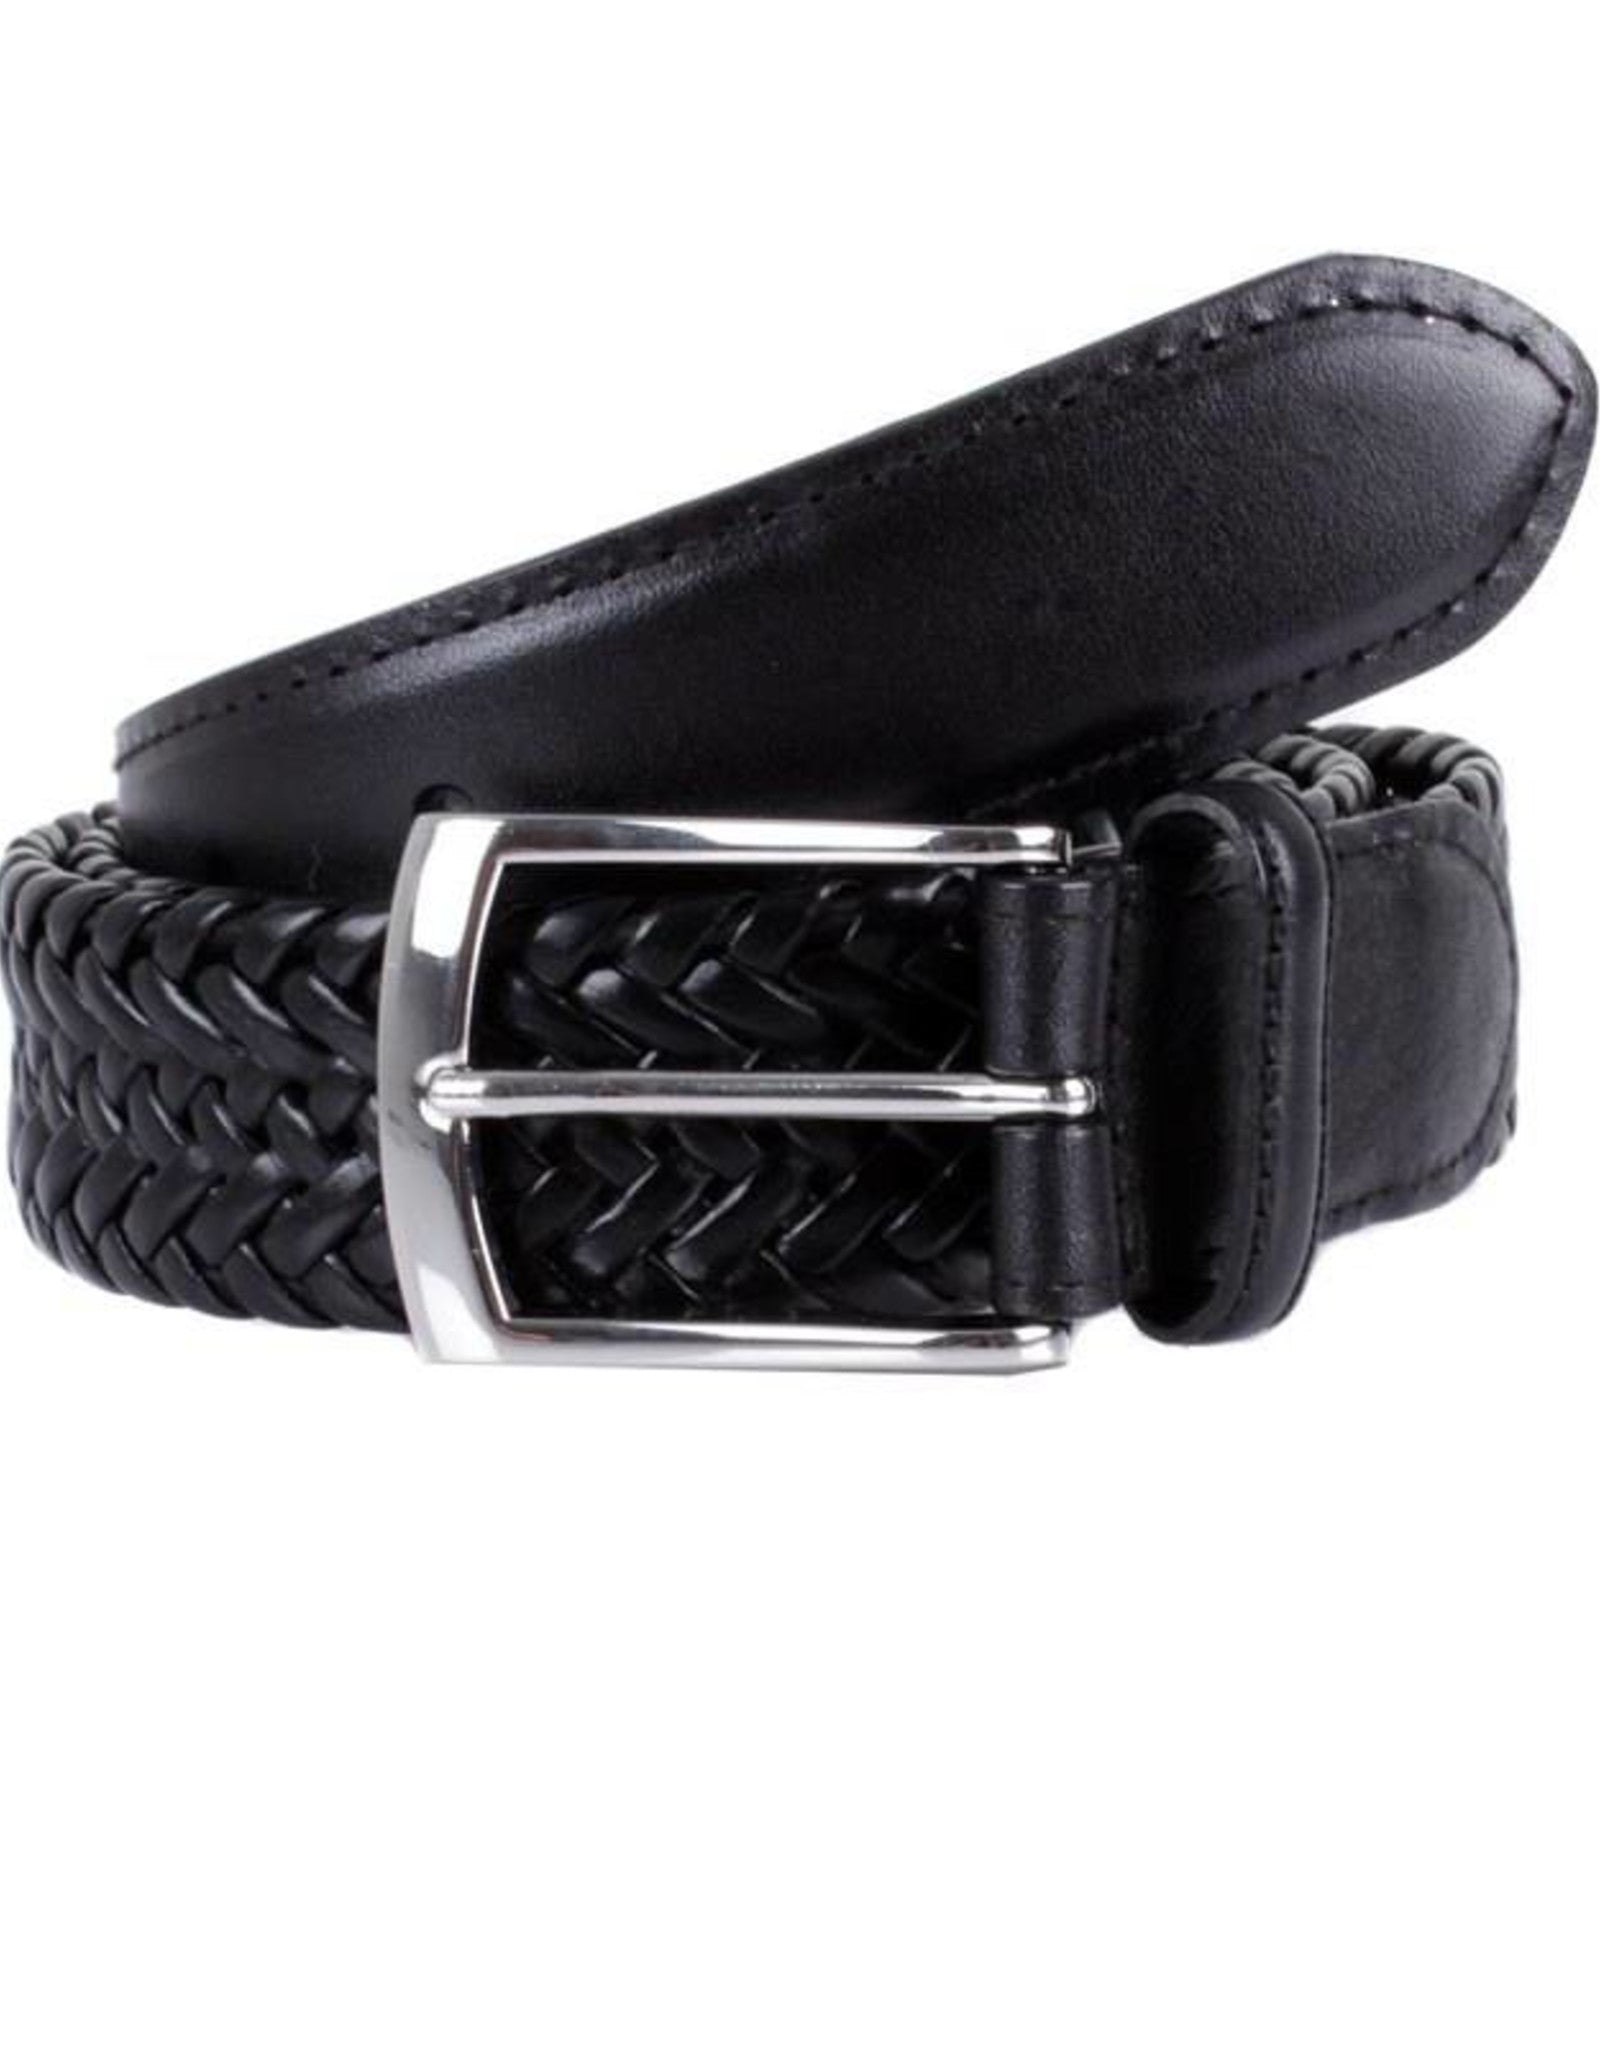 Dents Plaited Leather Casual Belt - Black - MitchellMcCabe